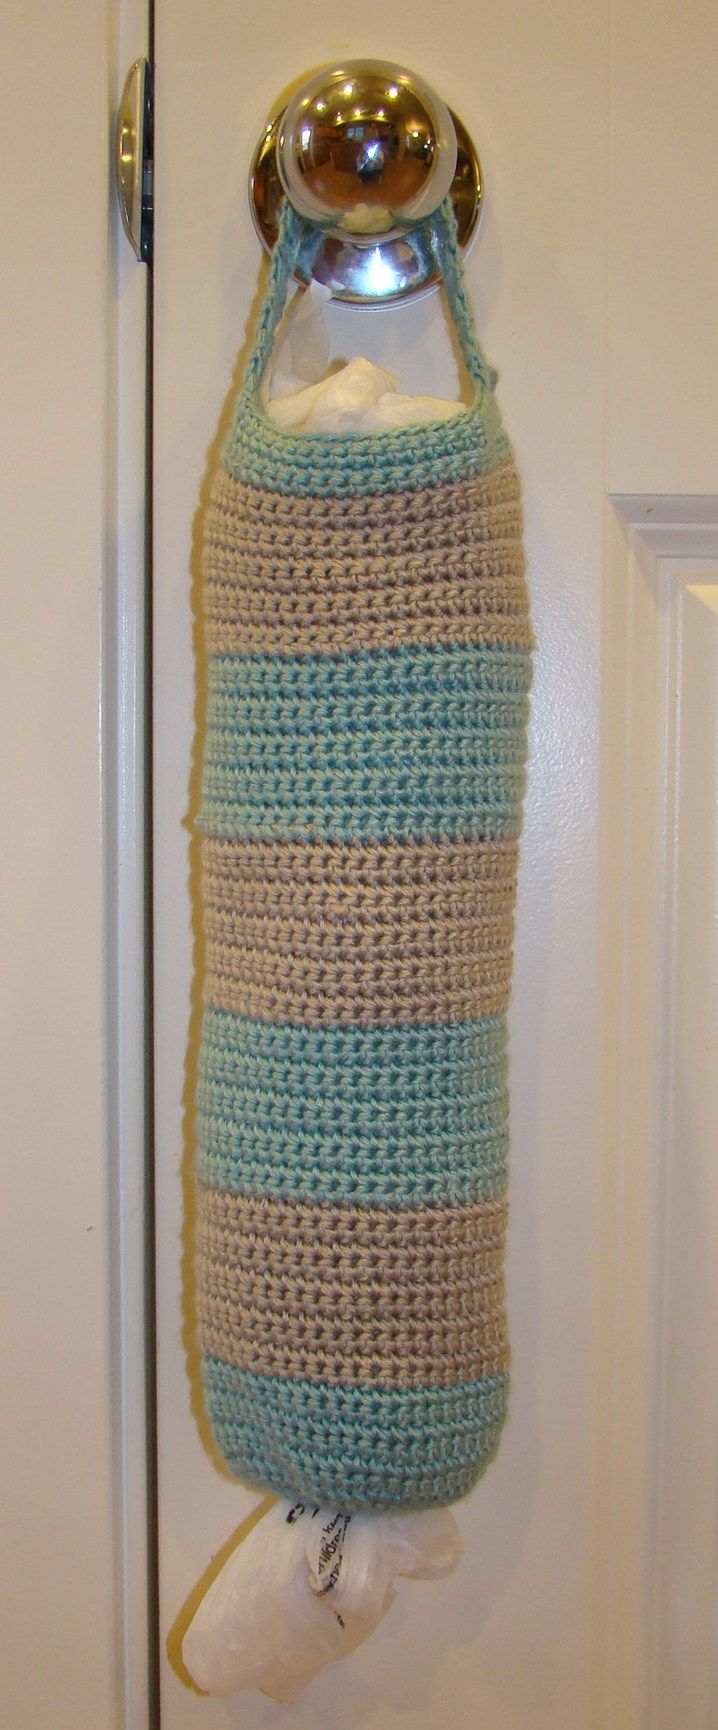 Easy cute and useful this grocery bag holder can be as long as crochet easy cute and useful this grocery bag holder can as long as you need it is made from spa yarn size but will work with any yarn or colors you bankloansurffo Gallery